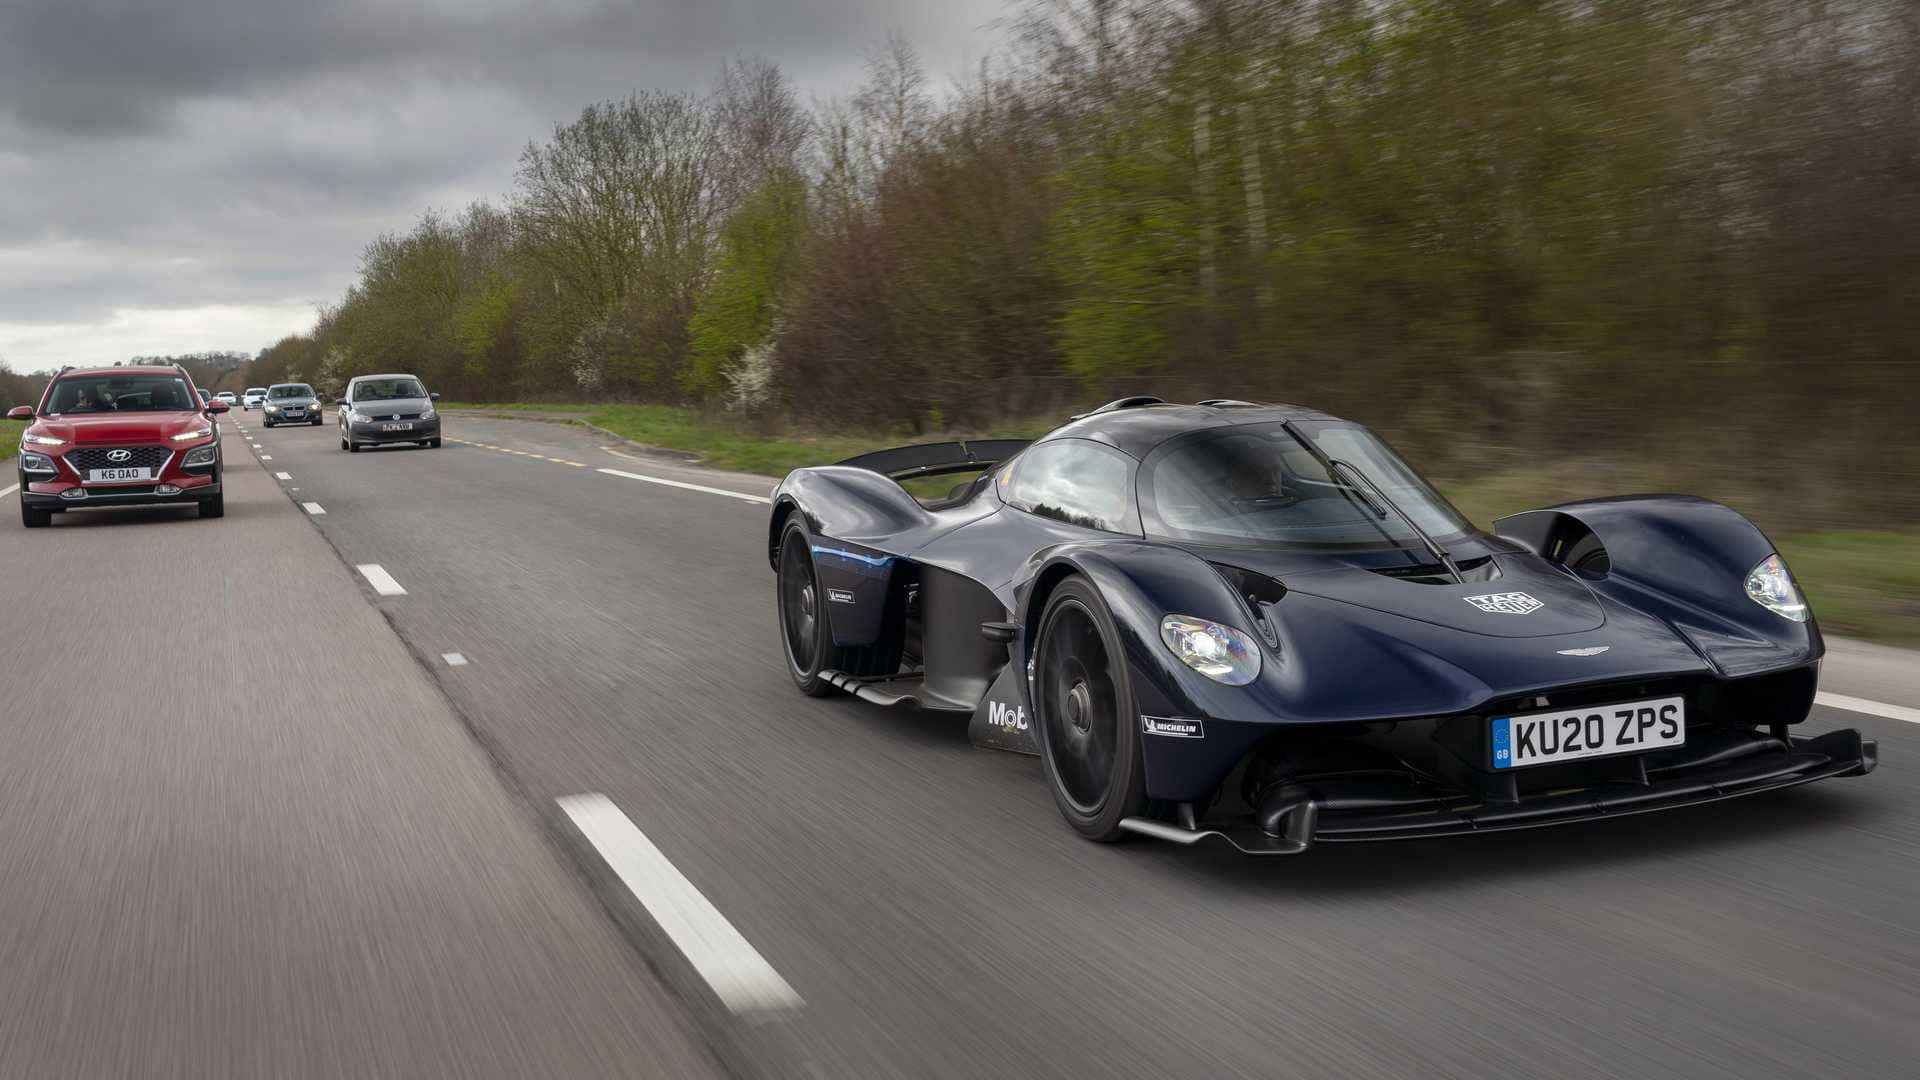 aston-martin-valkyrie-testing-on-public-roadsw